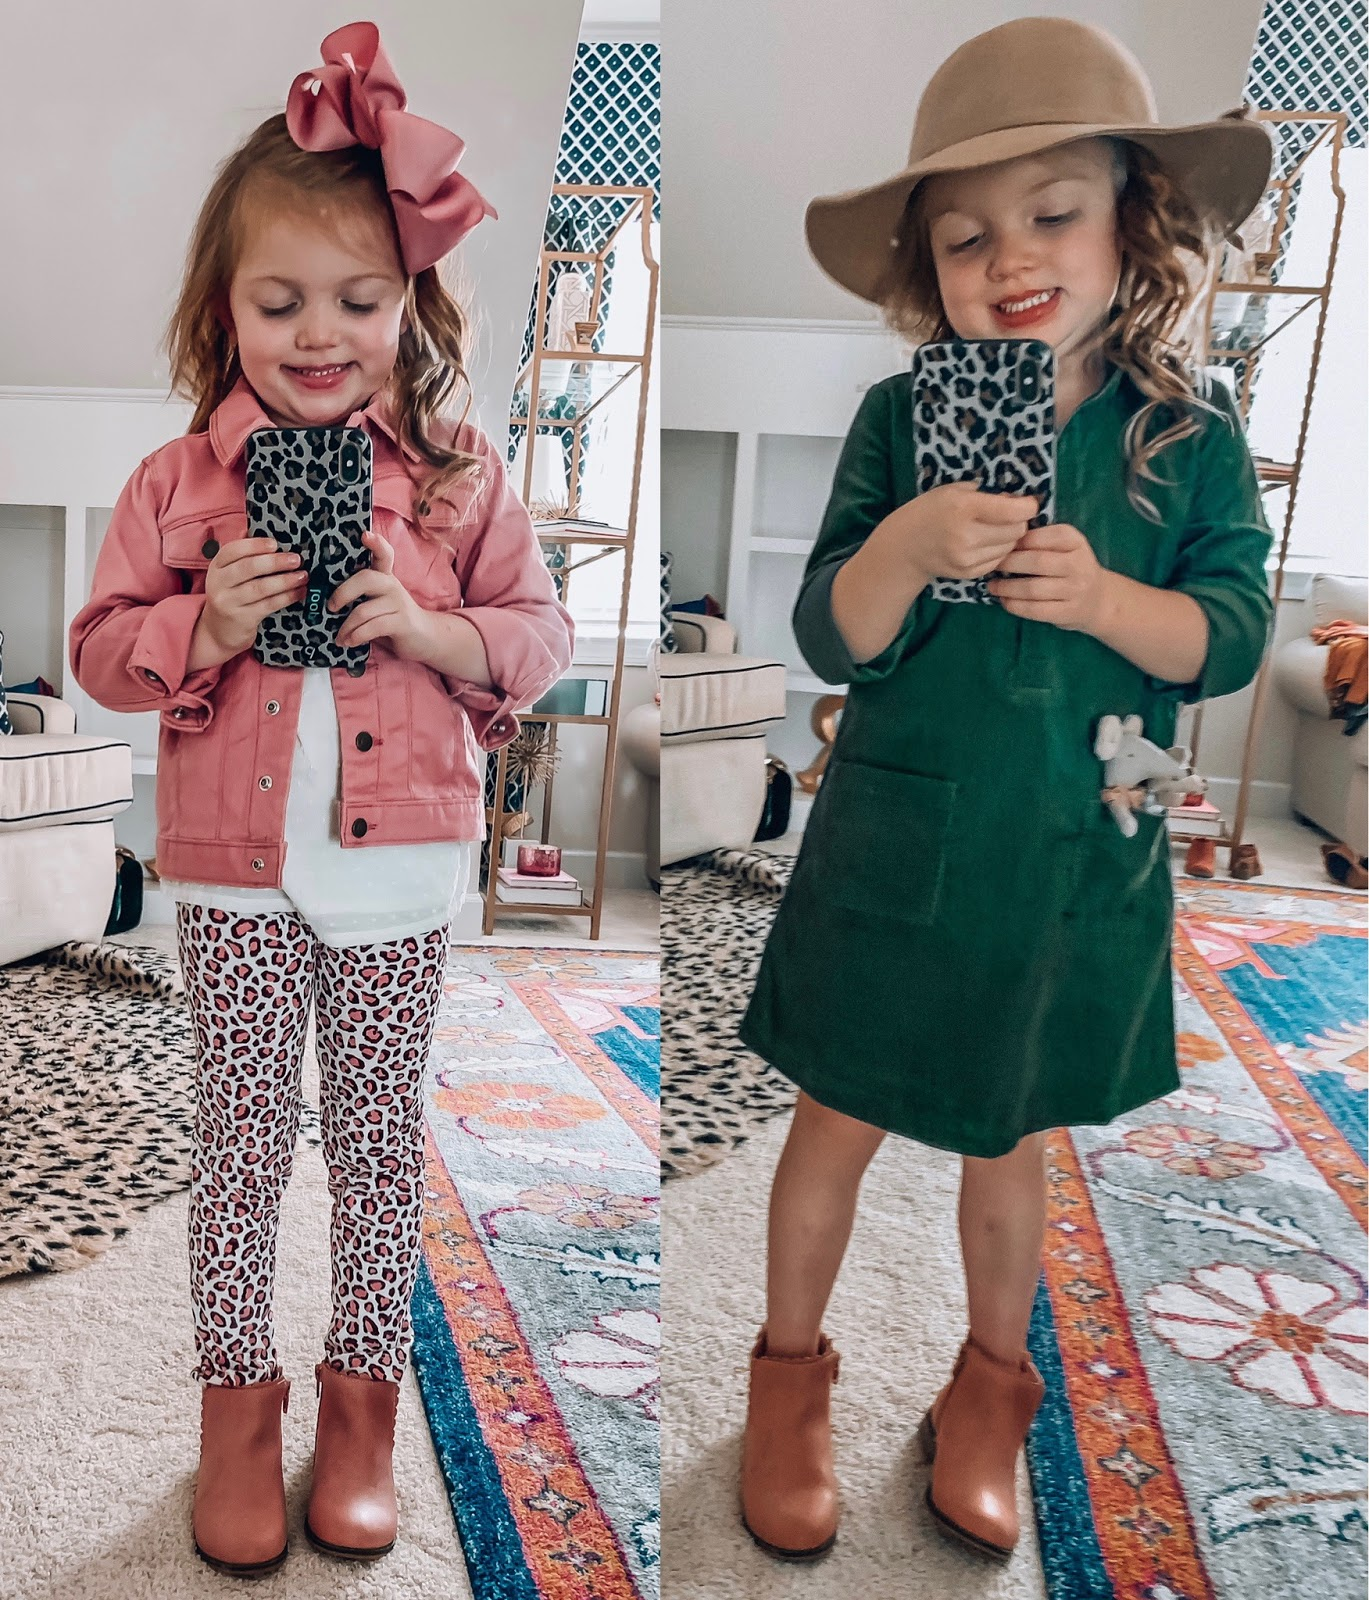 Old Navy Toddler Girls 2019 Fall Style - Madeline's Picks - Somethig Delightful Blog #affordablefashion